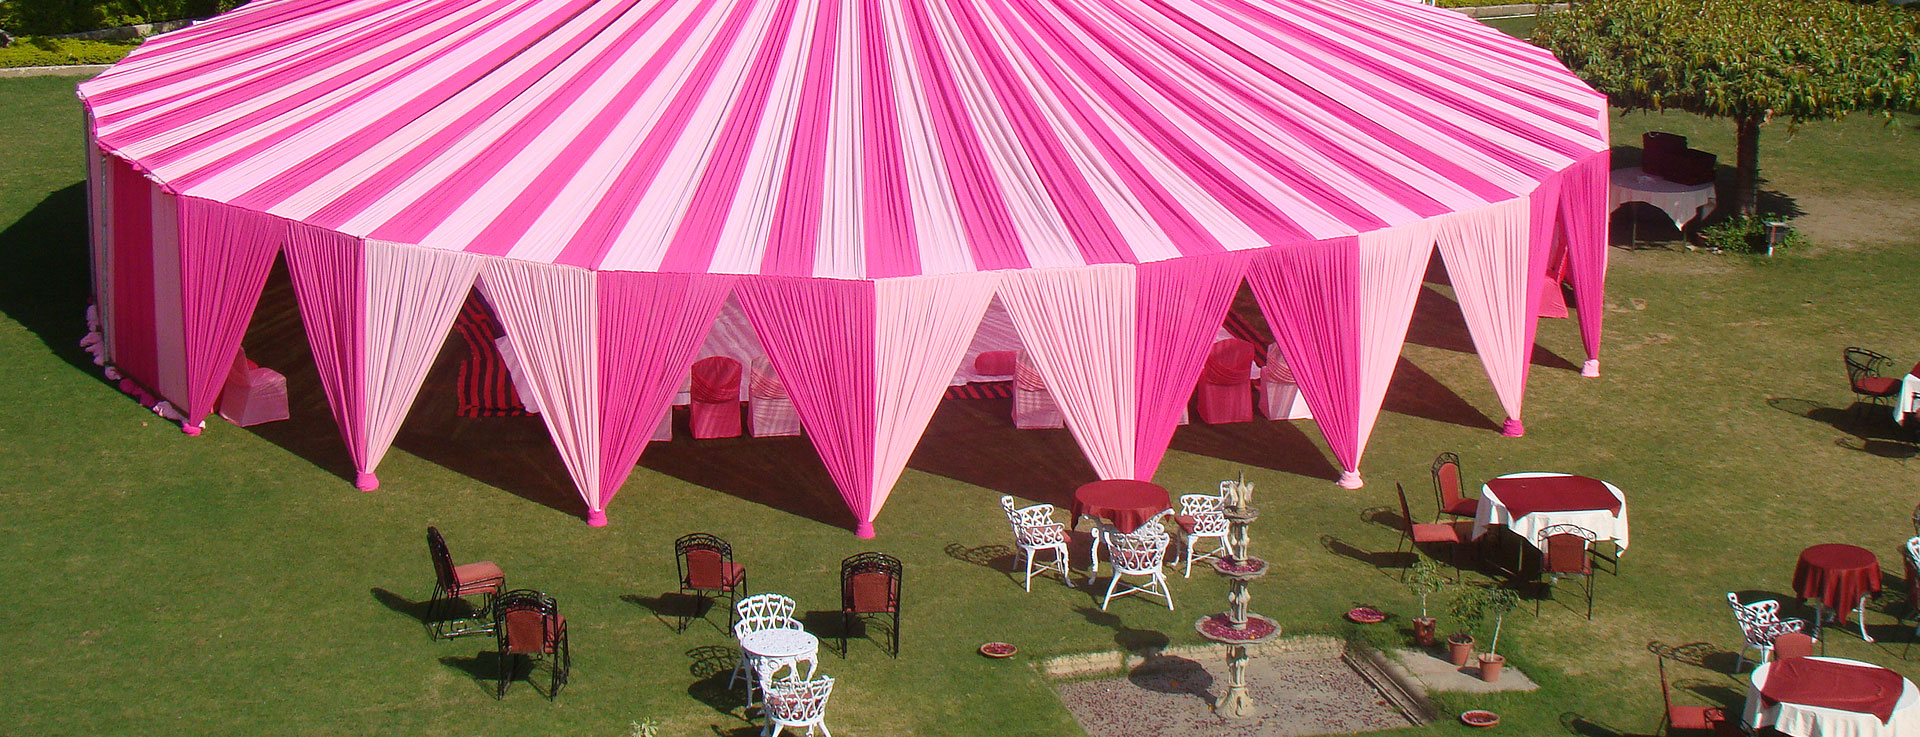 Tent house materials item suppliers near to me in hyderabad for Tent a house